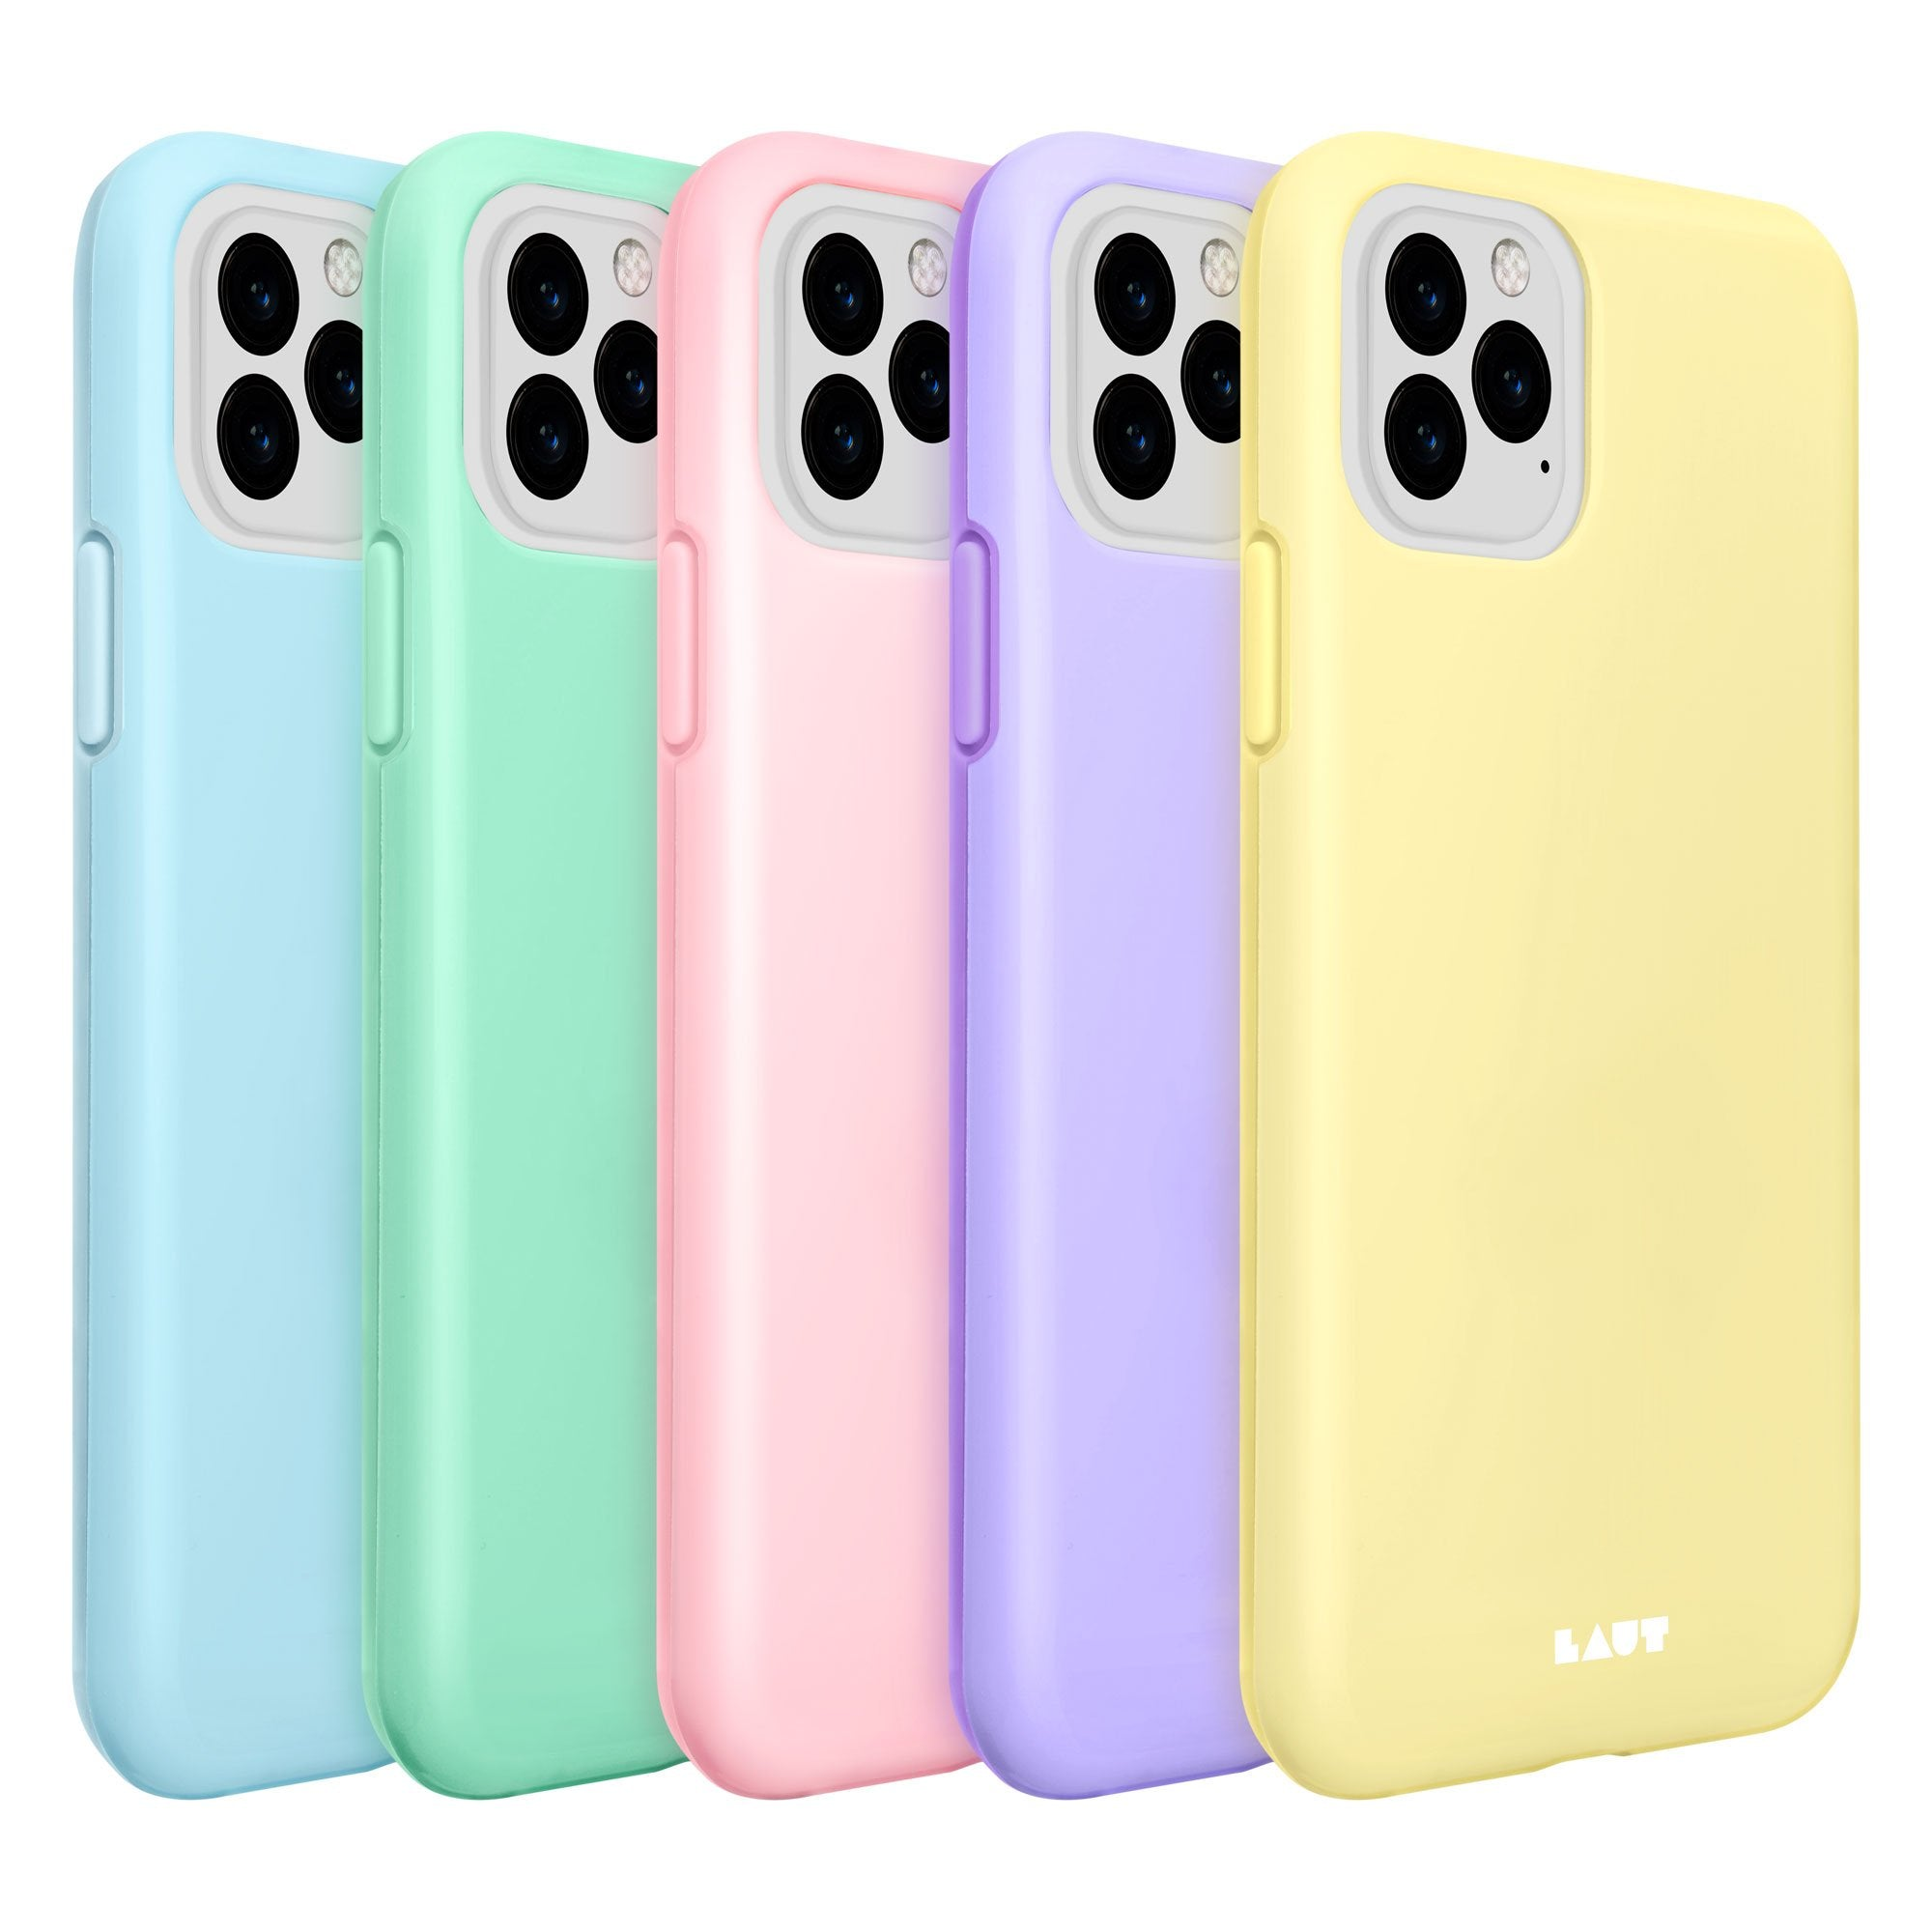 LAUT-HUEX PASTELS for iPhone 11 Series-Case-iPhone 11 / iPhone 11 Pro / iPhone 11 Pro Max